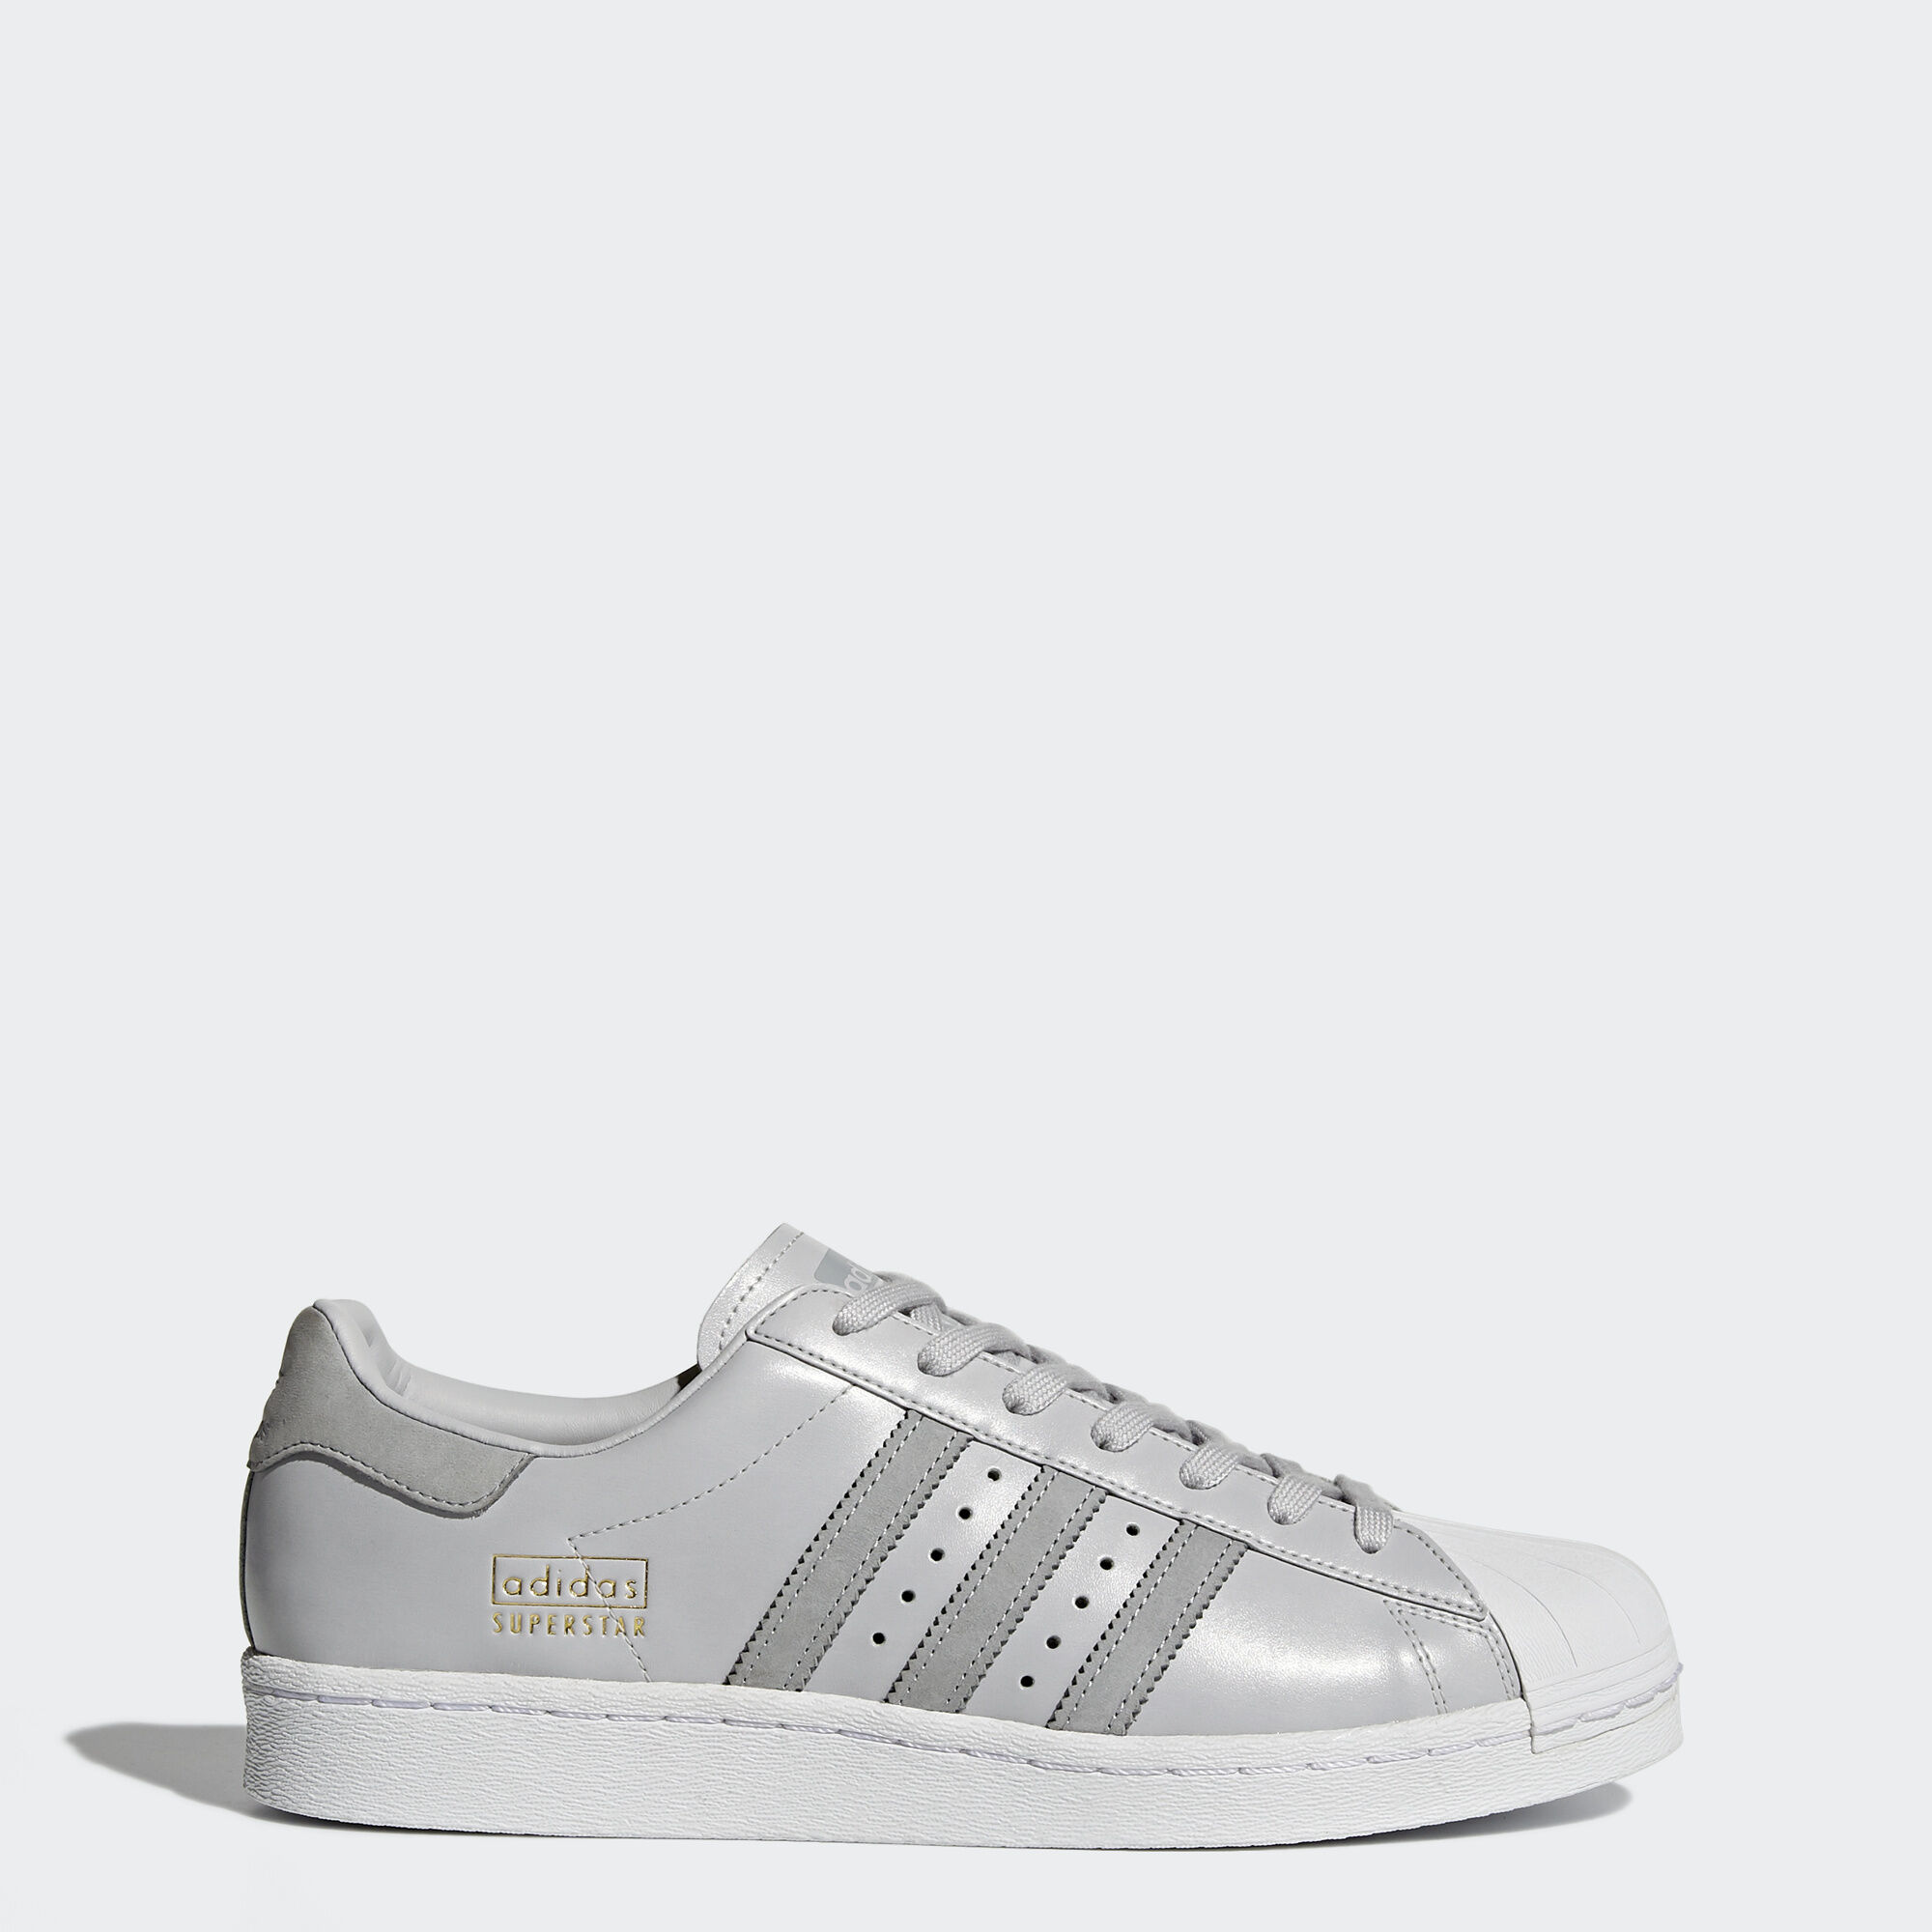 adidas superstar mid